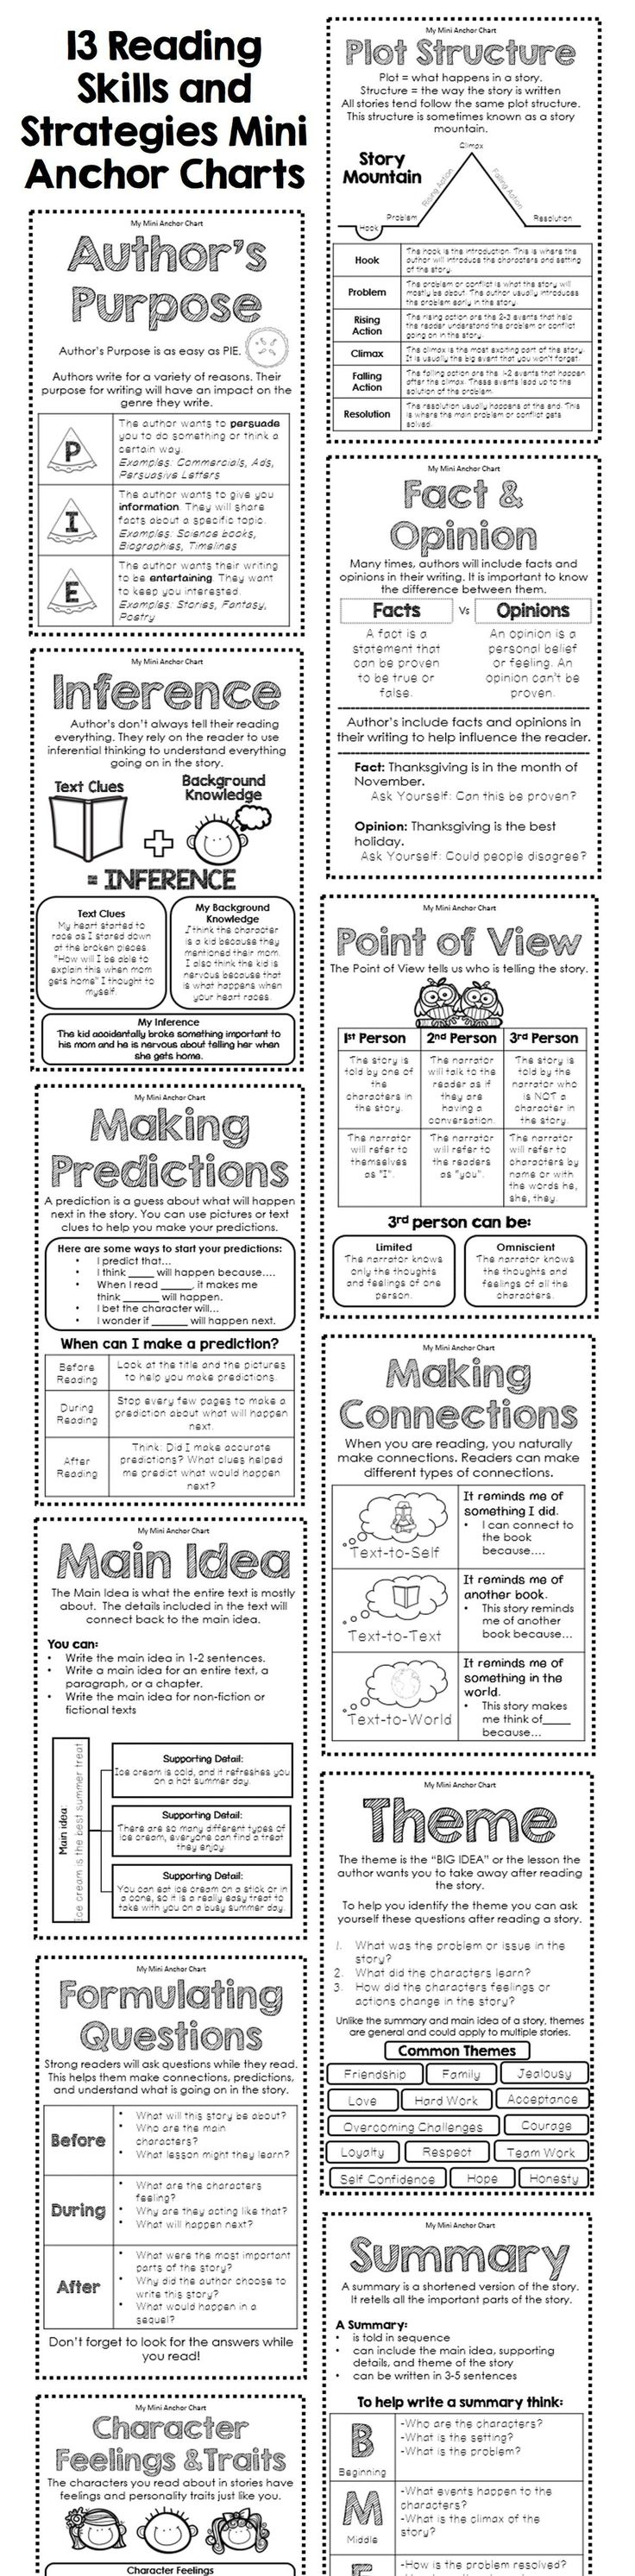 These mini anchor charts are a great addition to your interactive reader's notebook. Each anchor chart gives an explanation of a reading strategy or skill. Students can glue them in their journal for quick and easy reference while they are independently reading. Super Effective Program Teaches Children Of All Ages To Read. Incredible Results | http://qoo.by/2mHQ Super Effective Program Teaches Children Of All Ages To Read. Incredible Results | http://qoo.by/2mHQ